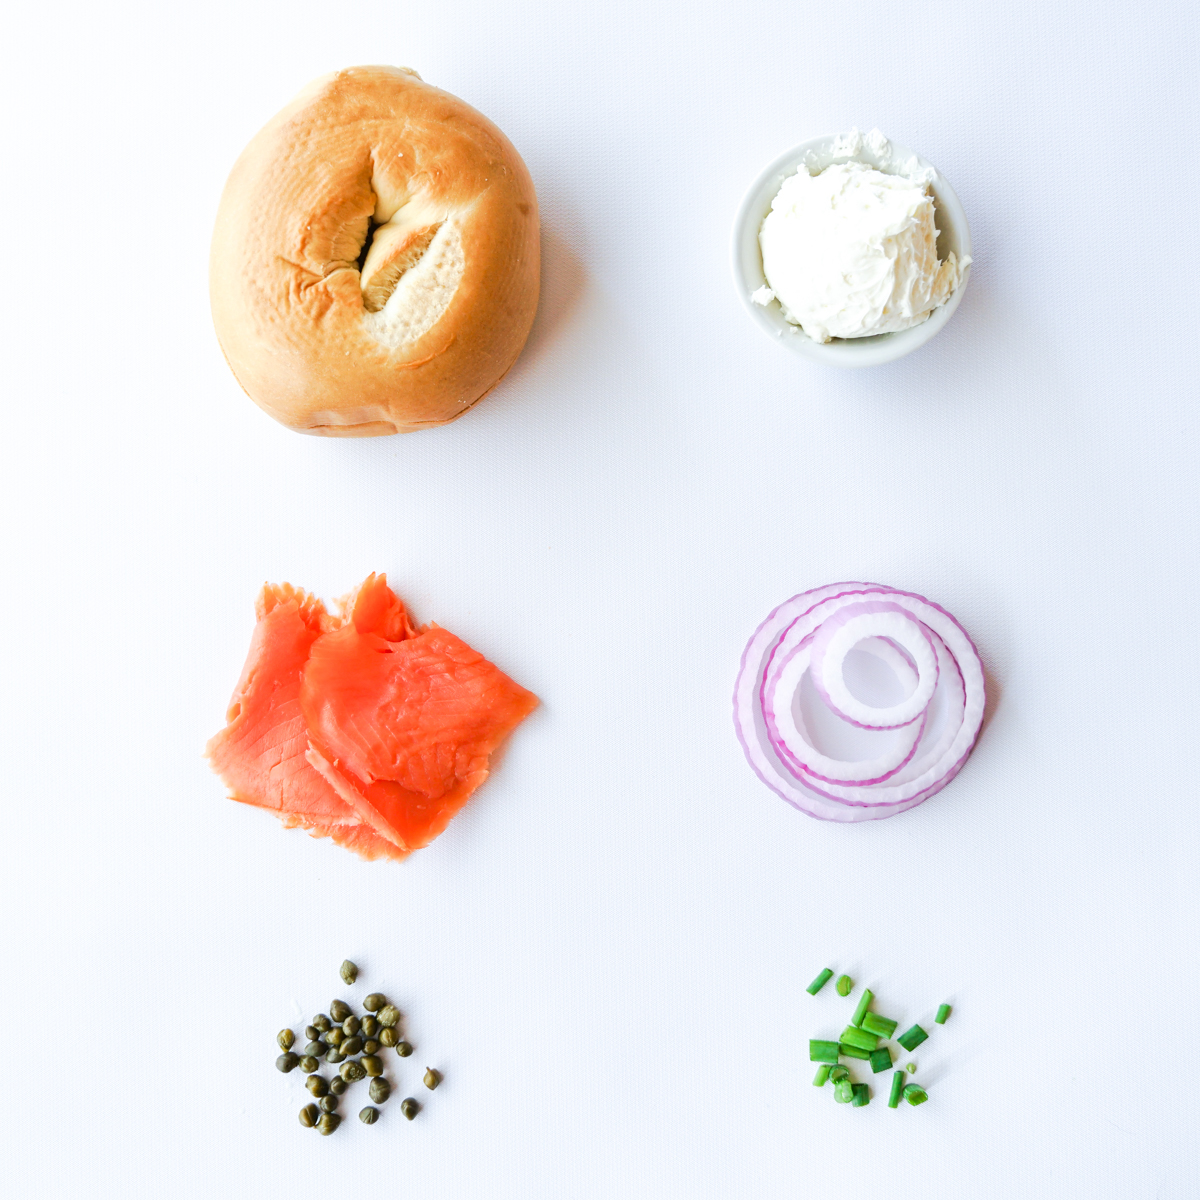 bread bakery Food  product food styling instagram local photo